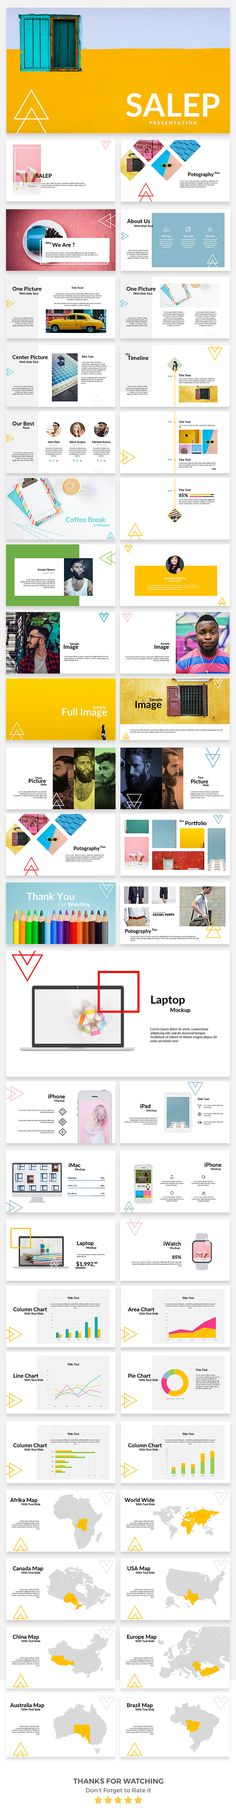 Salep Powerpoint Template - Business PowerPoint Templates